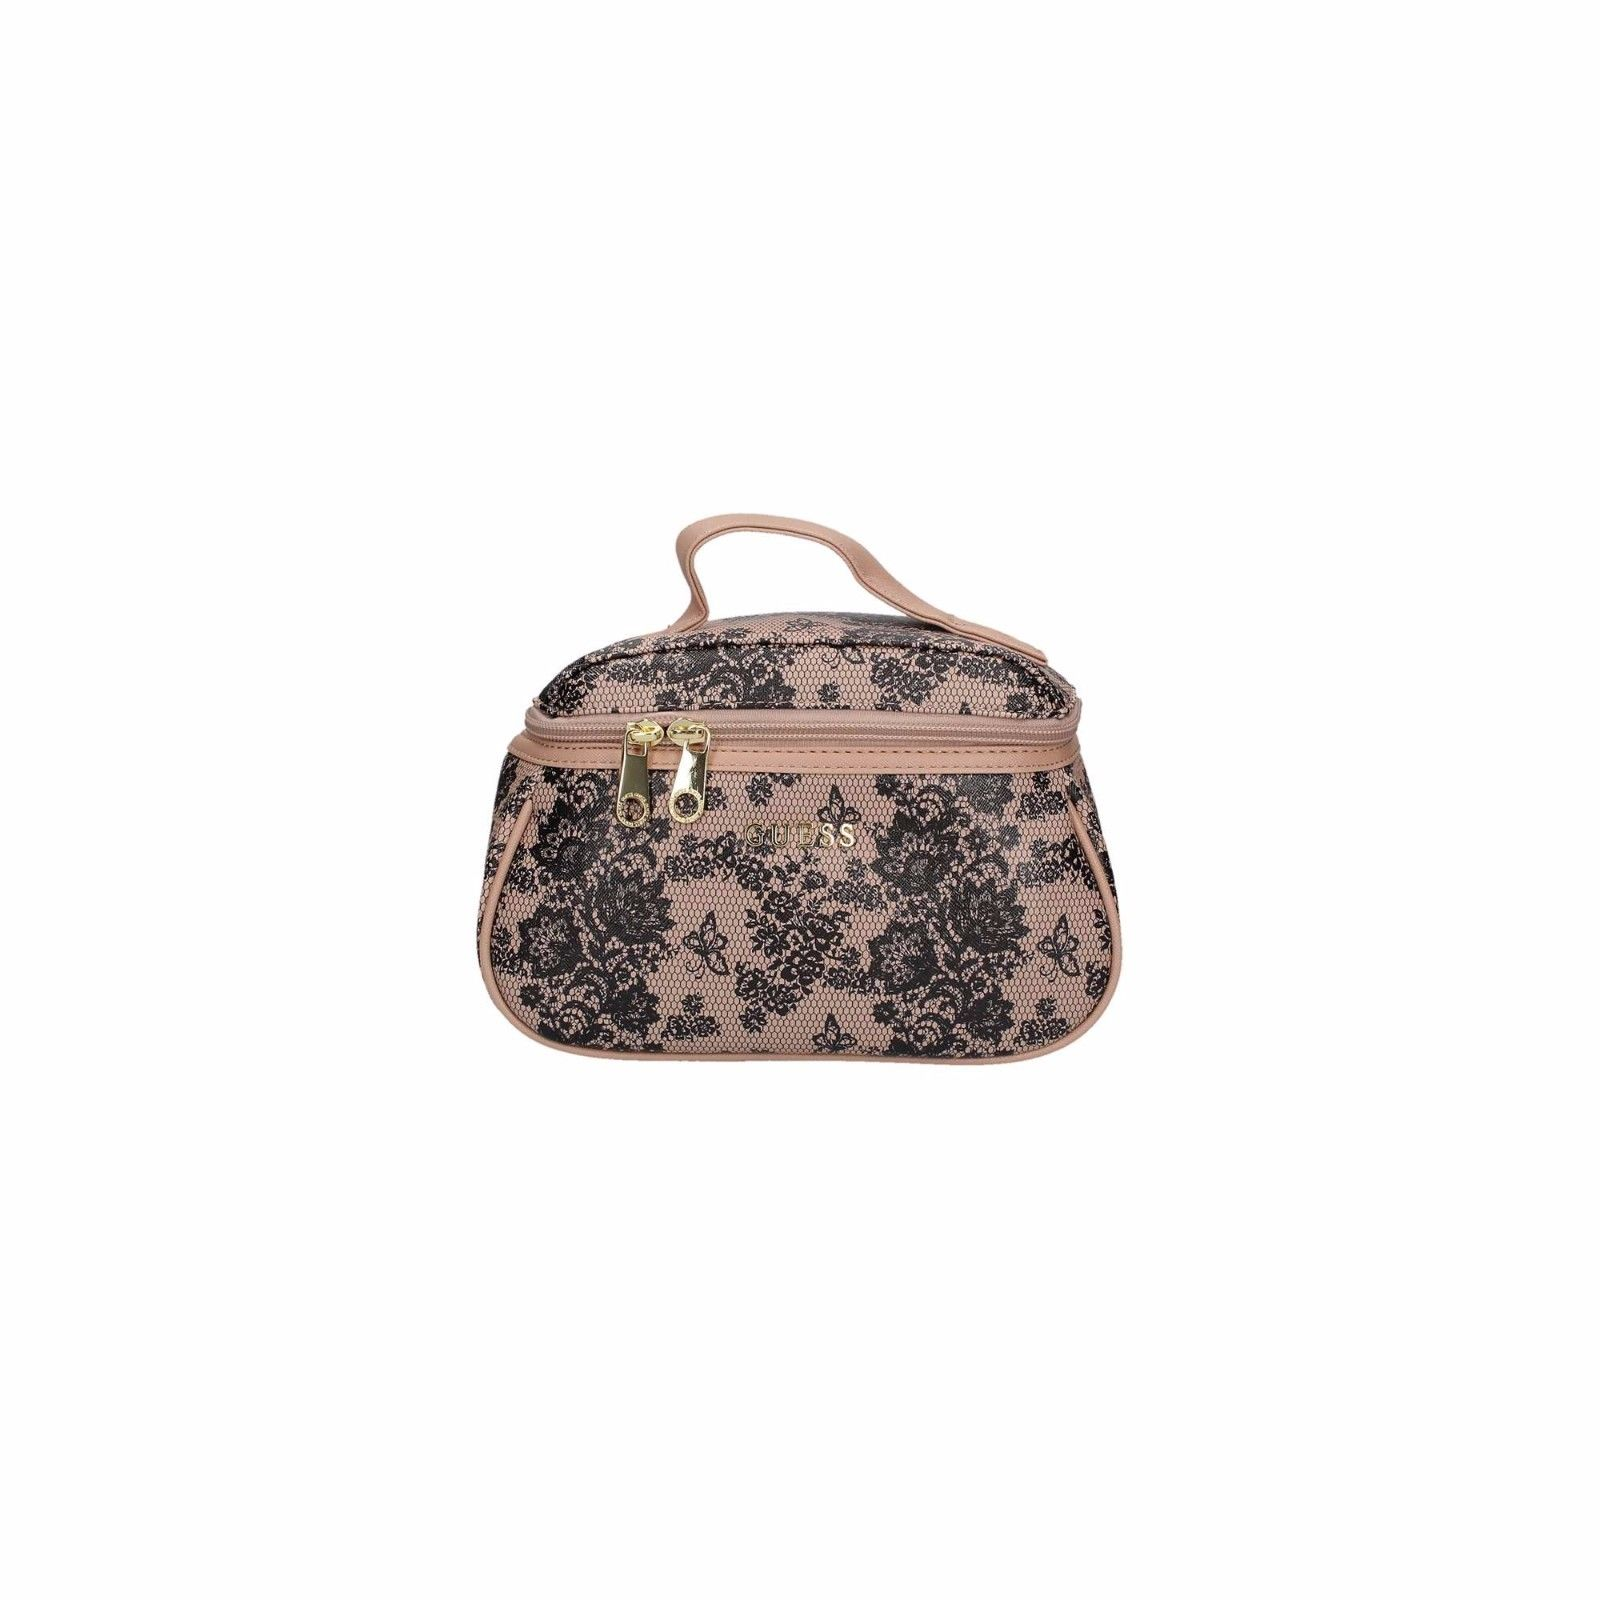 BORSA BORSE BEAUTY CASE DONNA GUESS ORIGINALE PWVAHIP7461 BAG A/I 2016/17 NEW